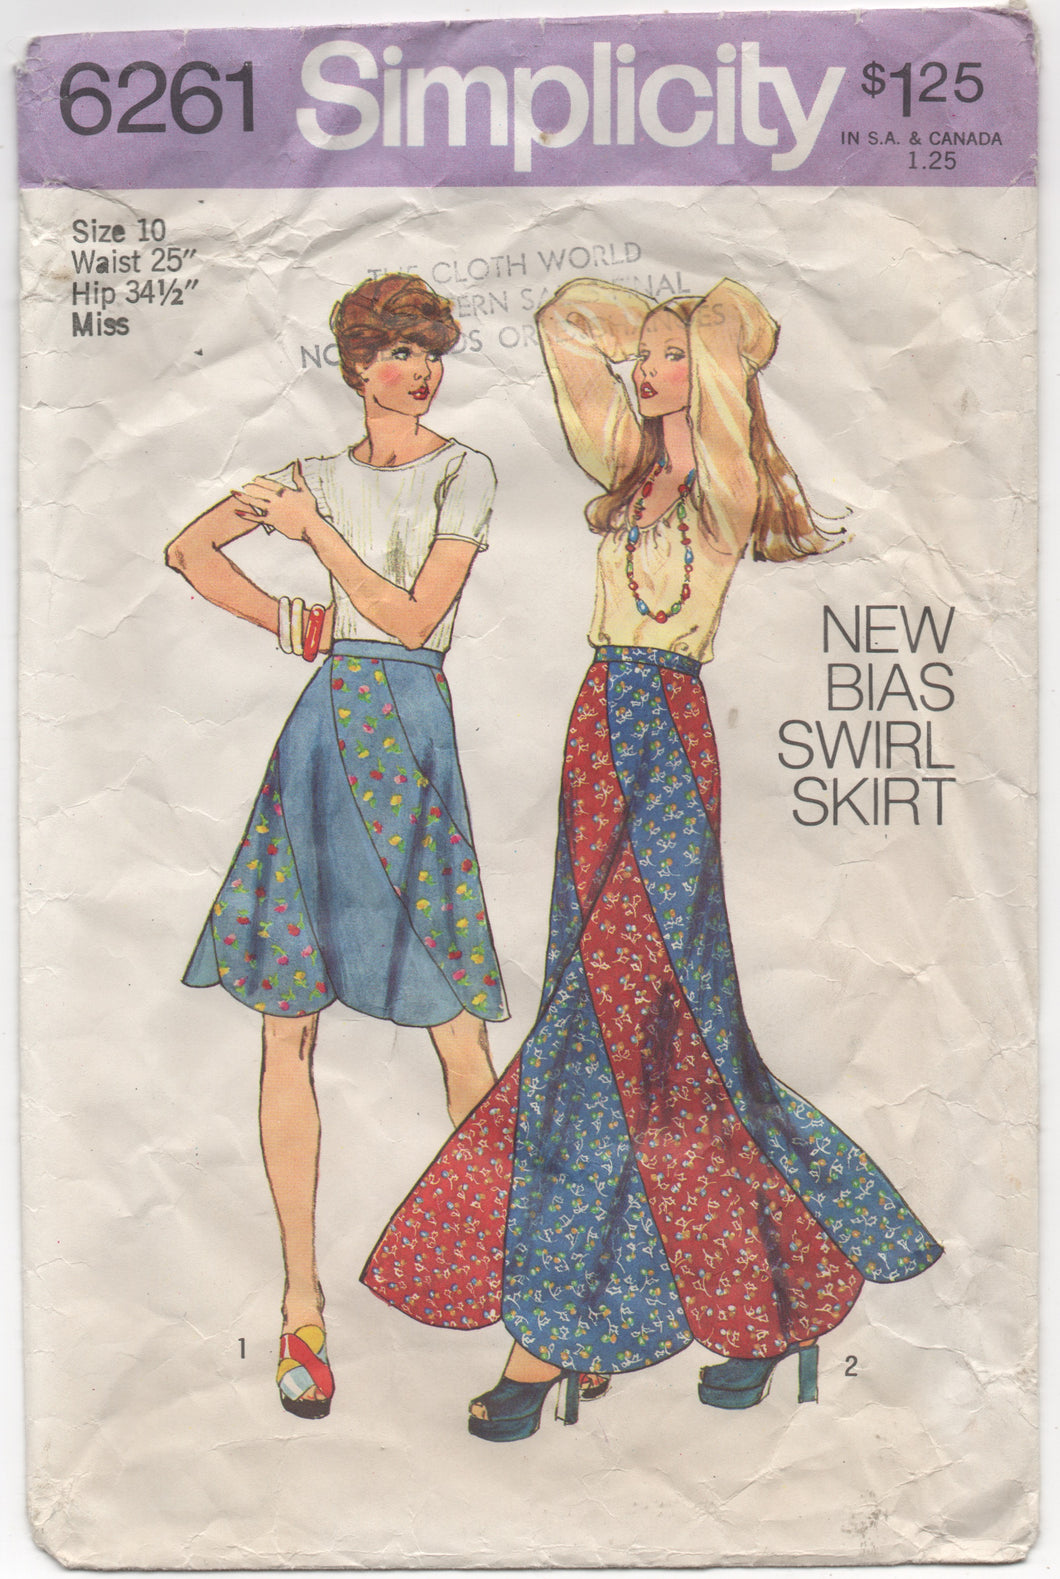 "1970's Simplicity Bias Cut Skirt in Two Lengths - Waist 25"" - No. 6261"